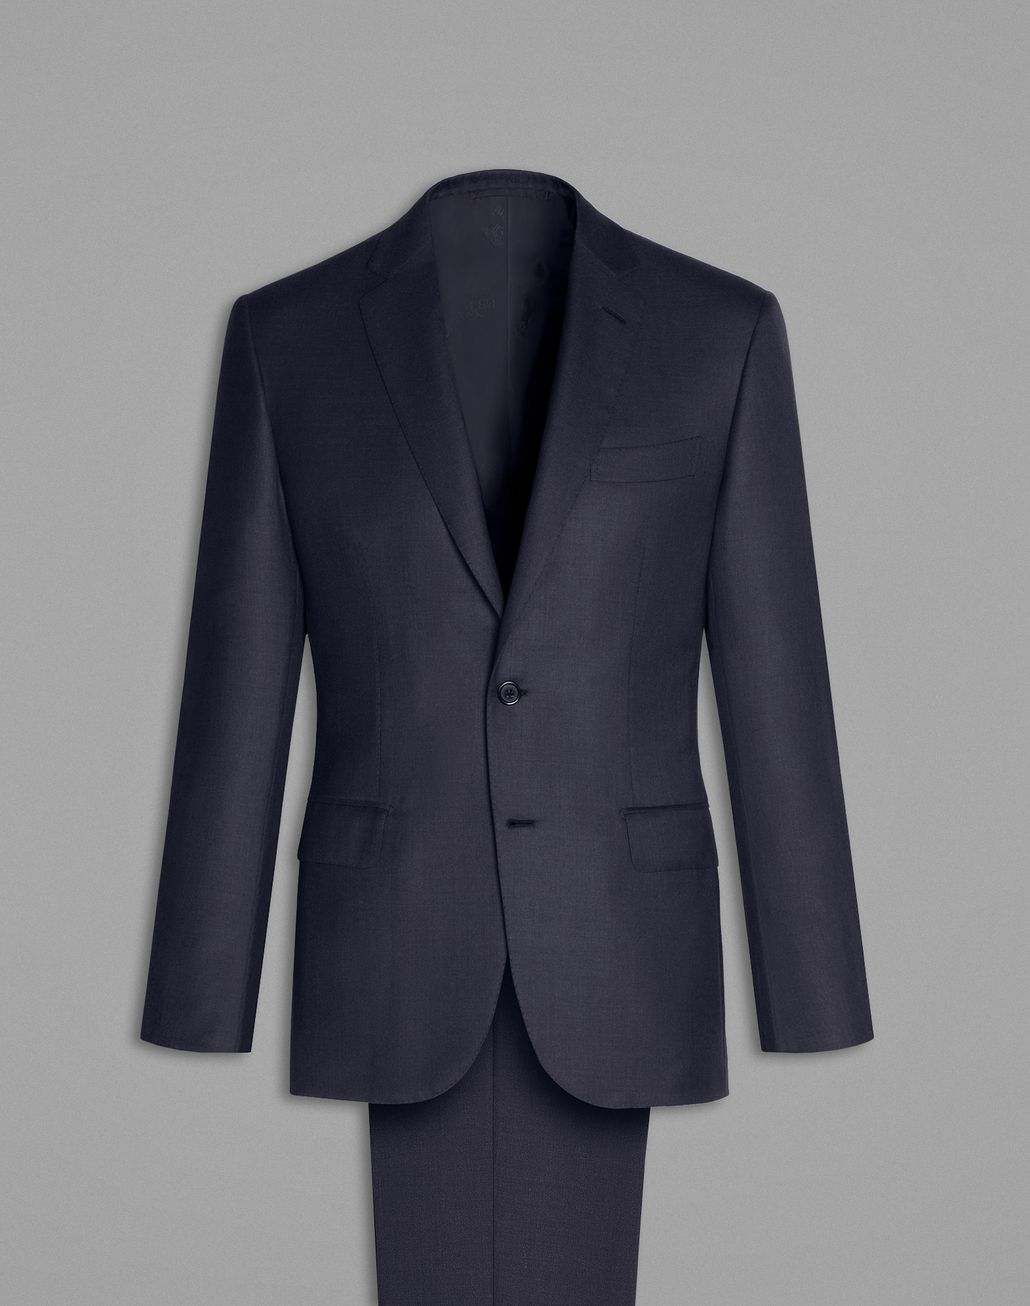 BRIONI Navy Blue Madison Suit Suits & Jackets U f